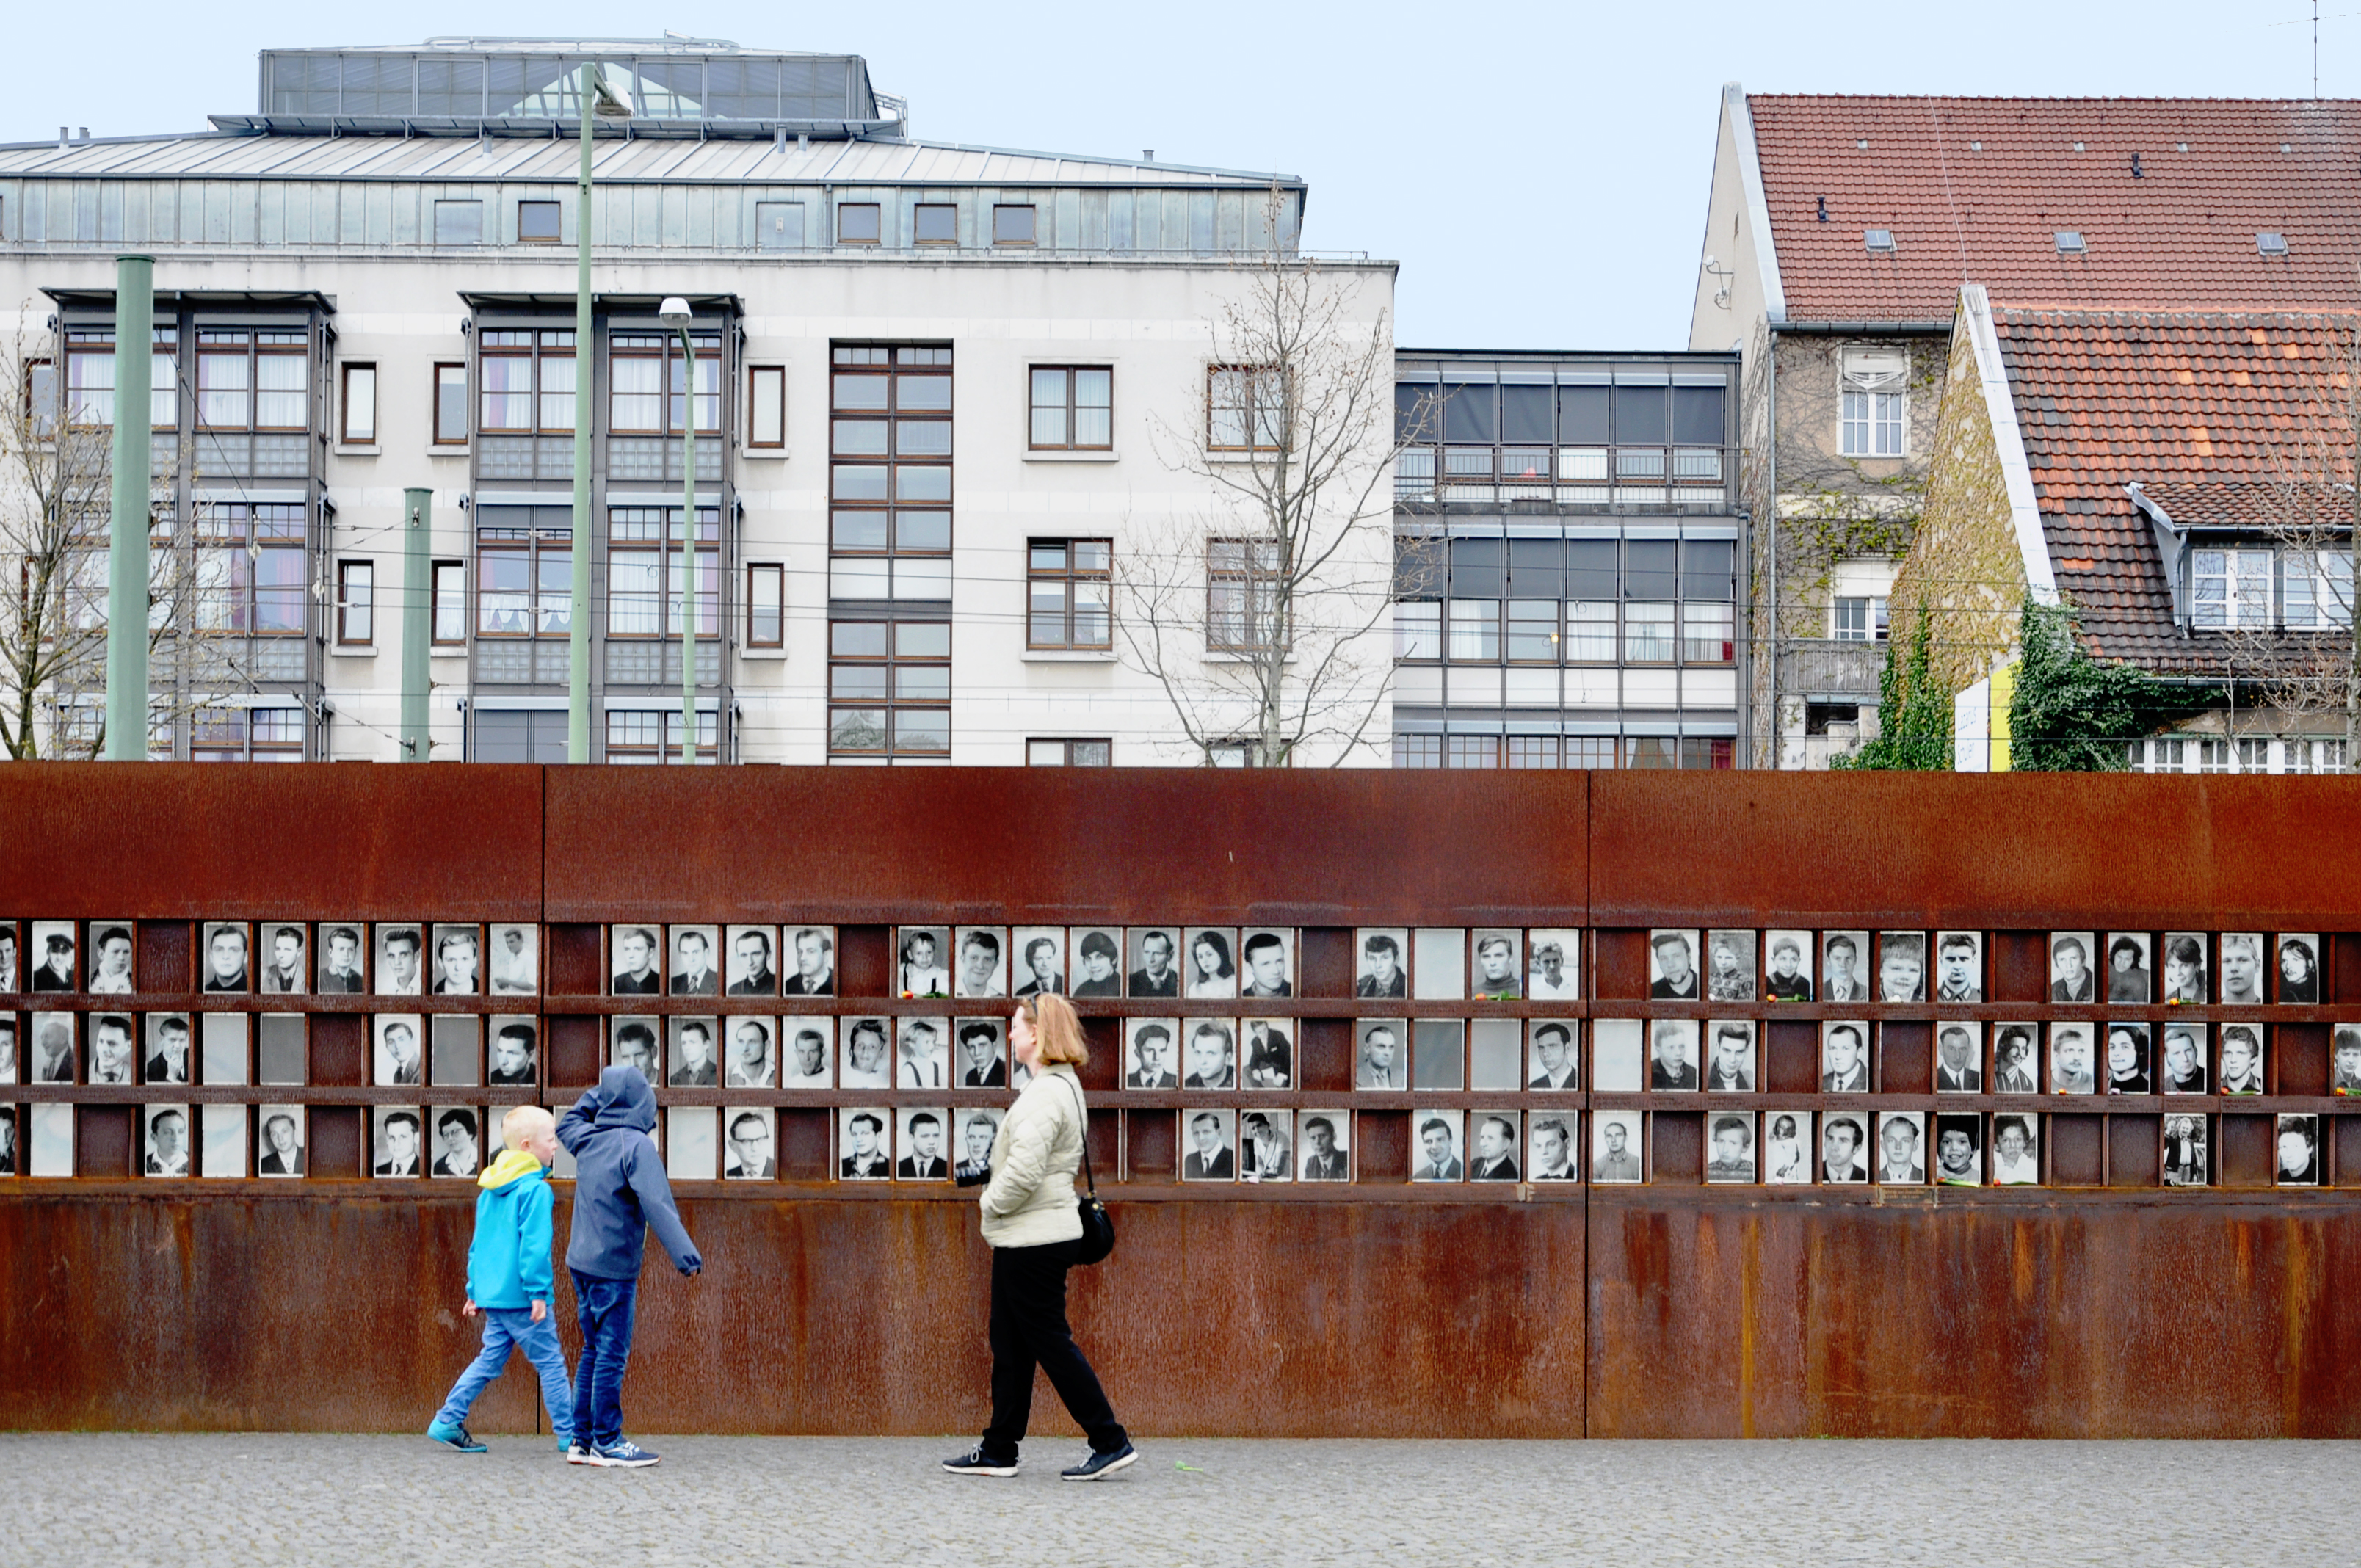 Monument of the Berlin Wall